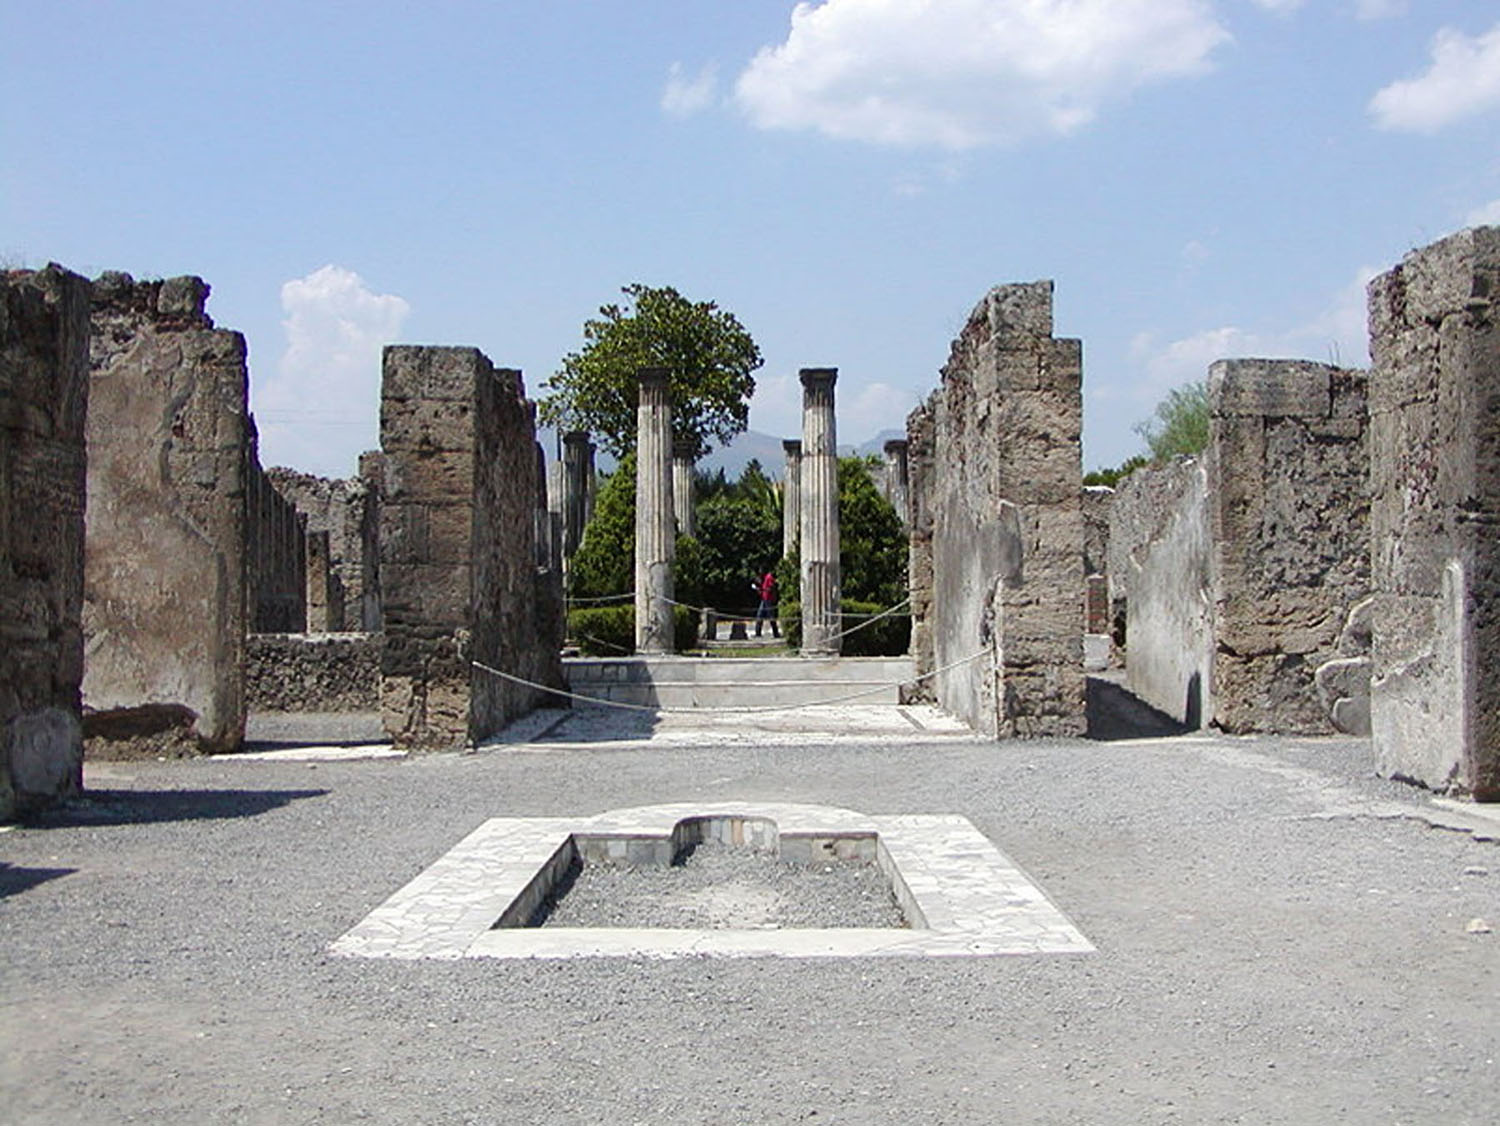 Fig. 3. View of the atrium of Casa di Pansa (VI.6.1), Pompeii.